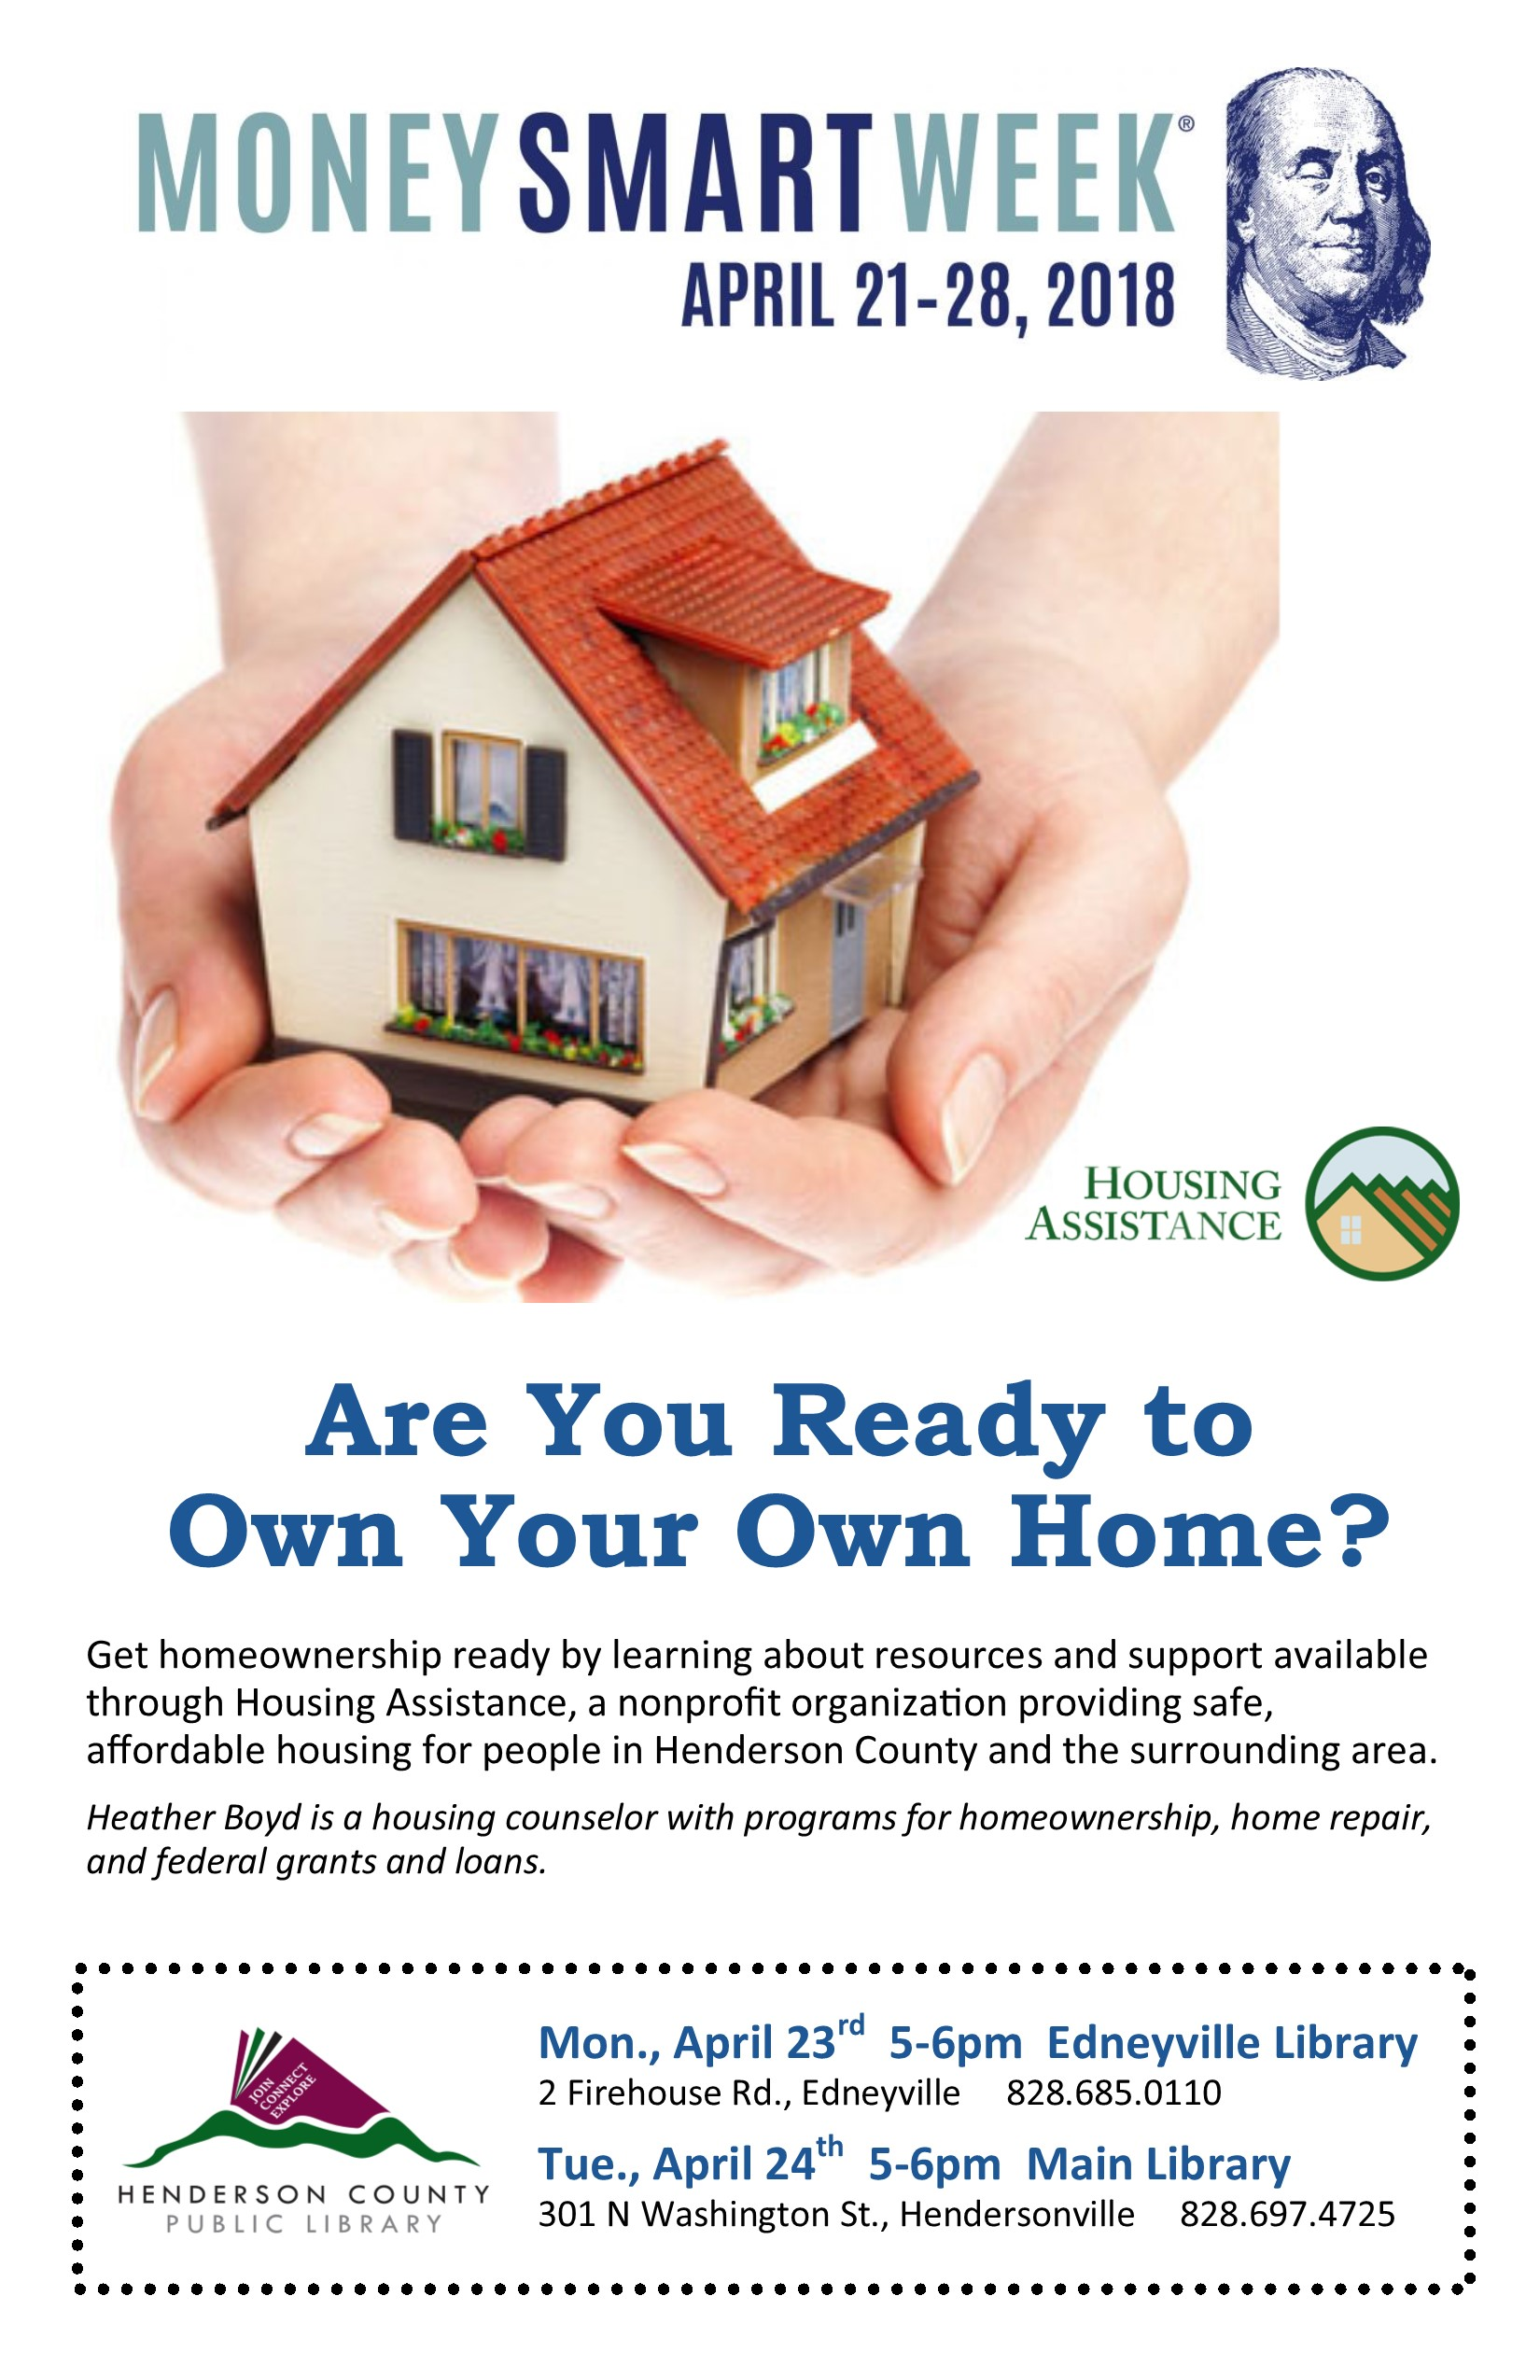 Are You Ready to Own Your Own Home?- Money Smart Week